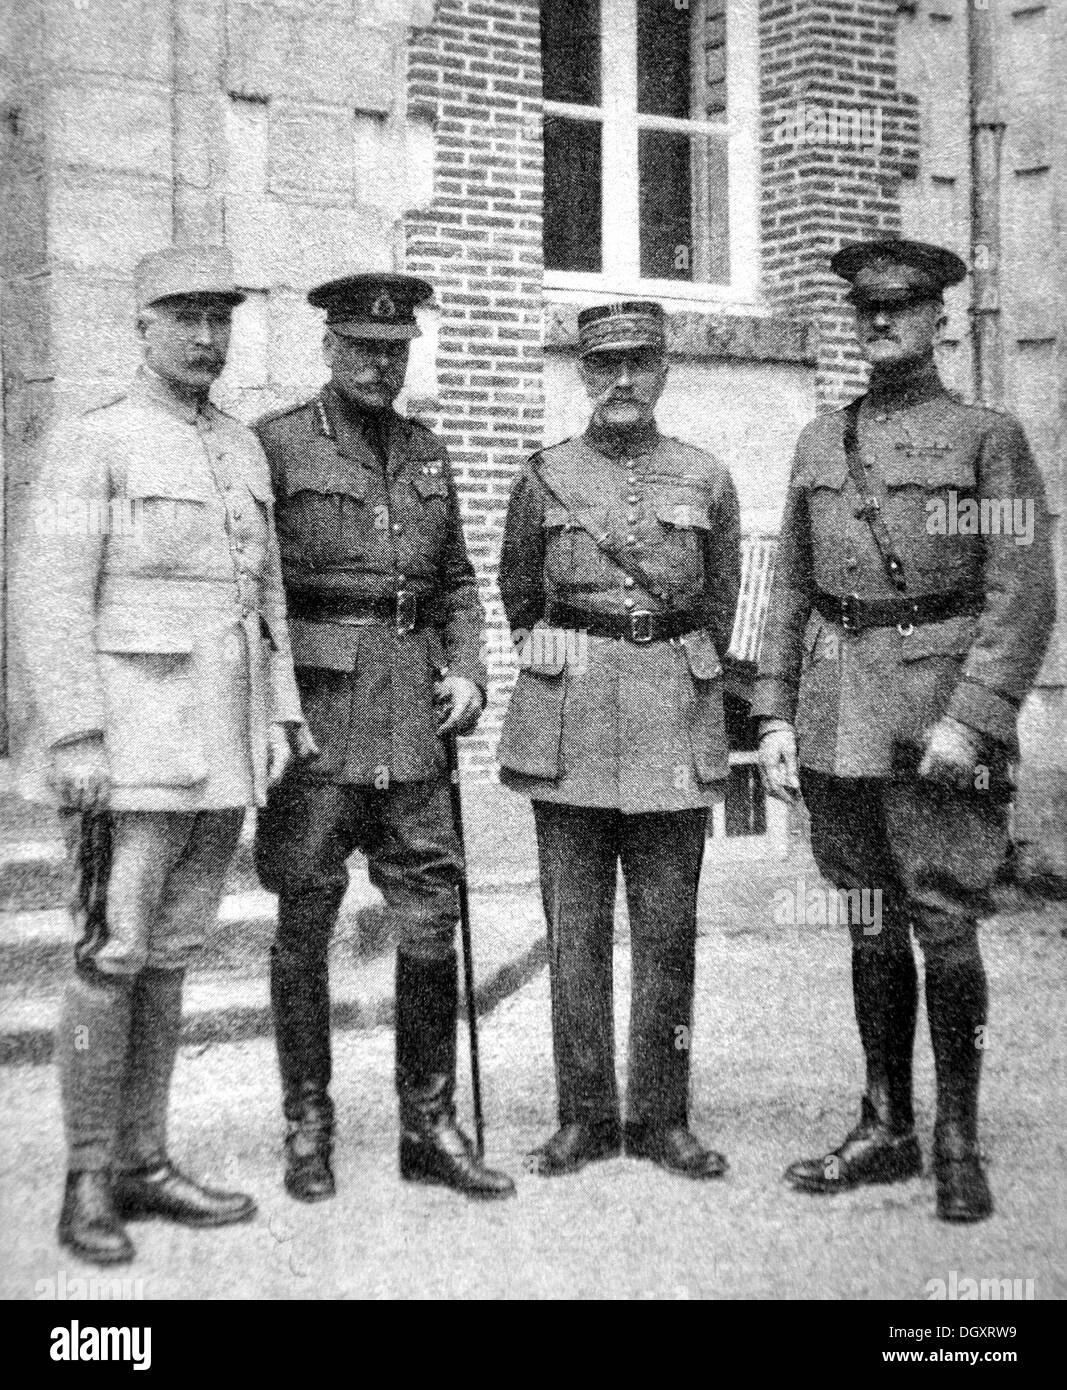 Old photograph of Supreme Allied Commanders Pétain, Haig, Foch, and Pershing, WWI - Stock Image